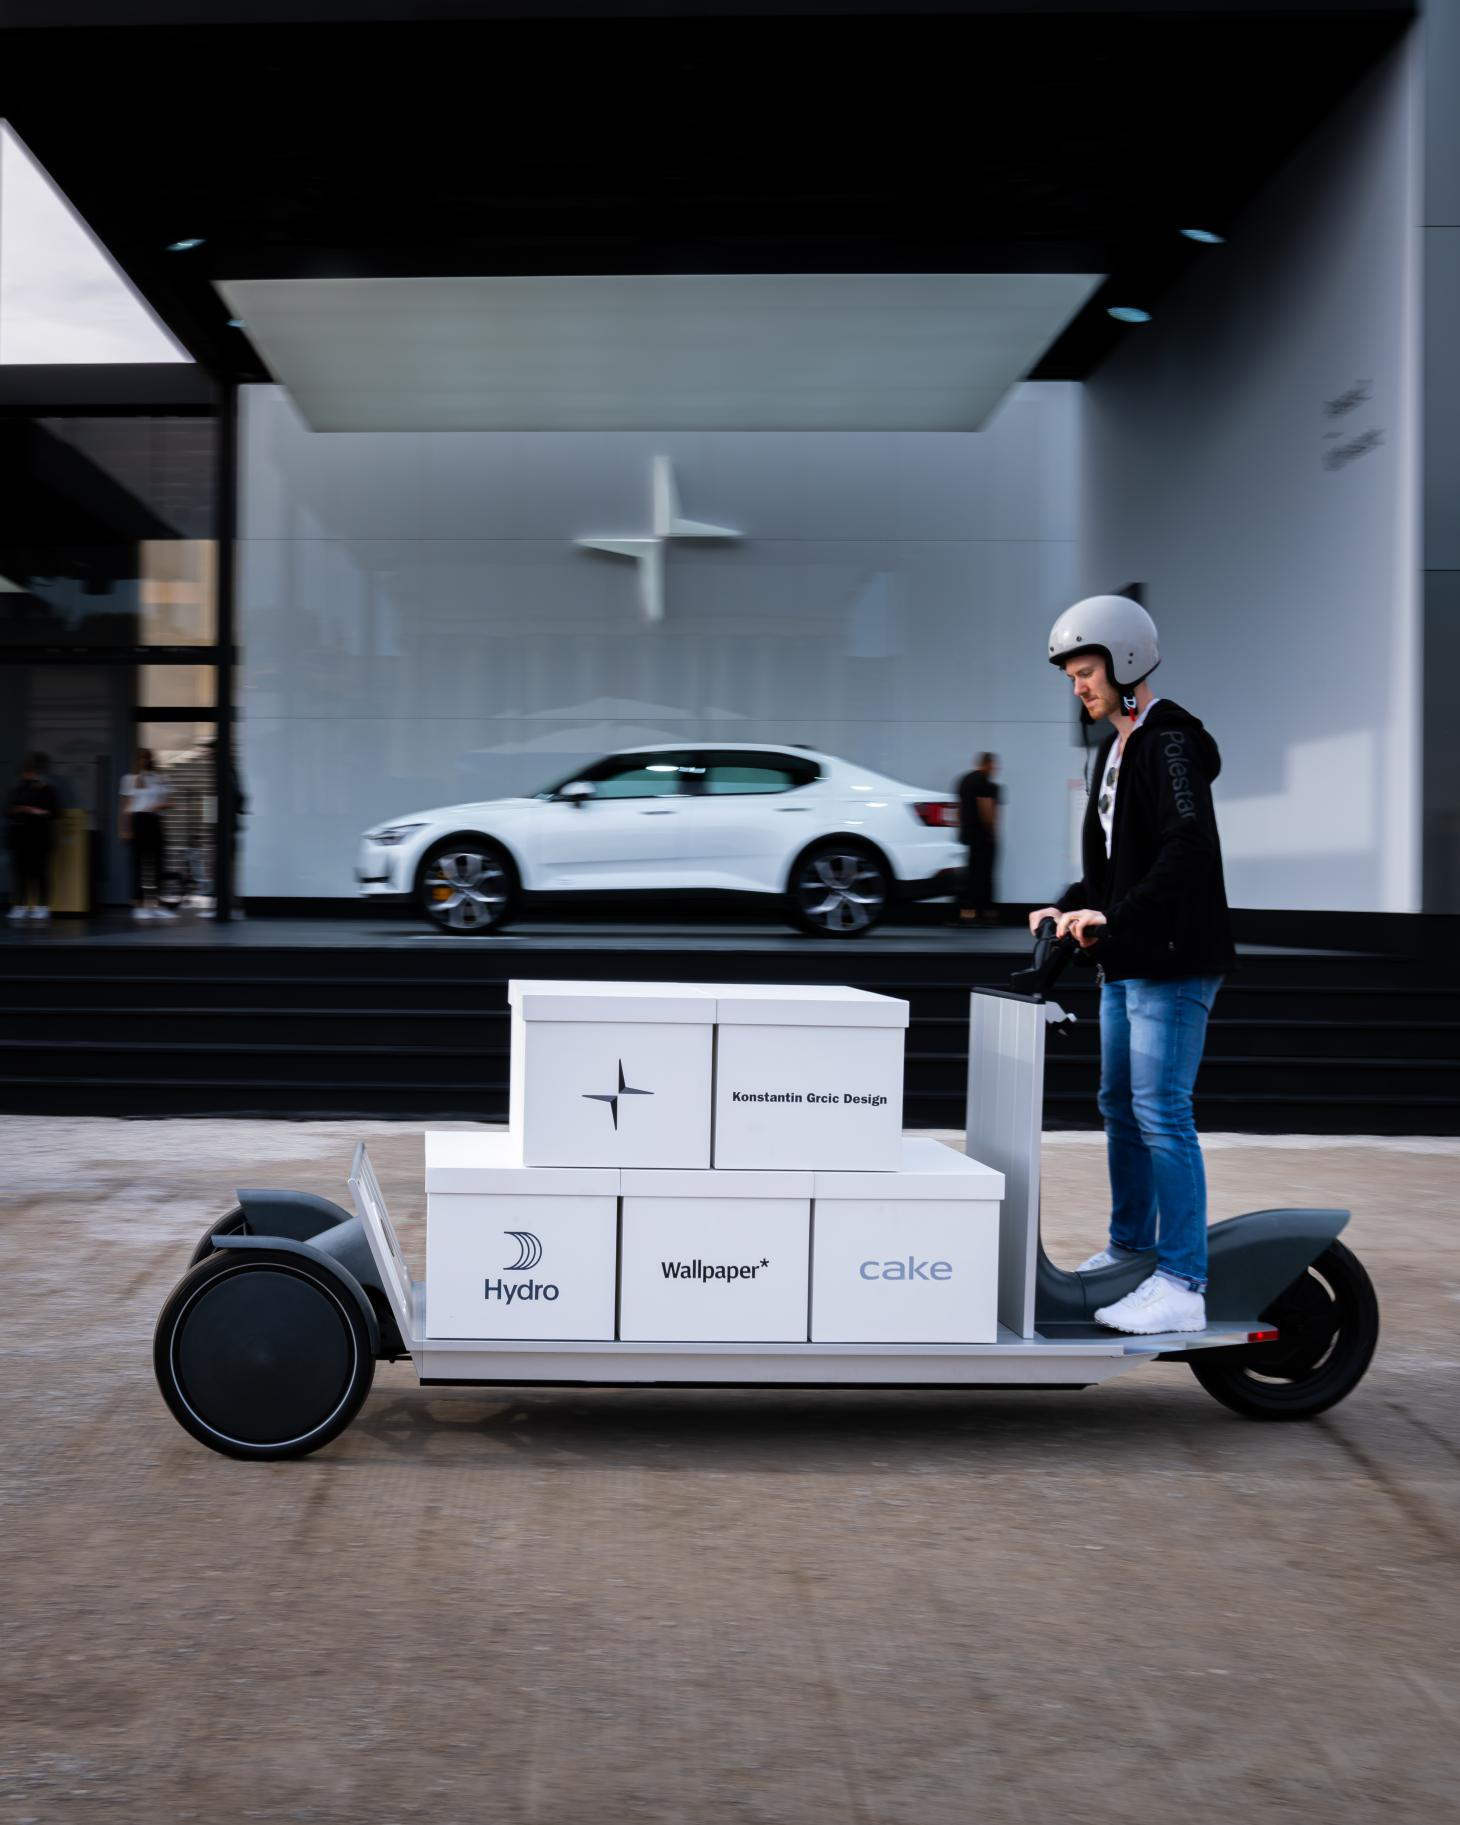 Move electric transporter in action